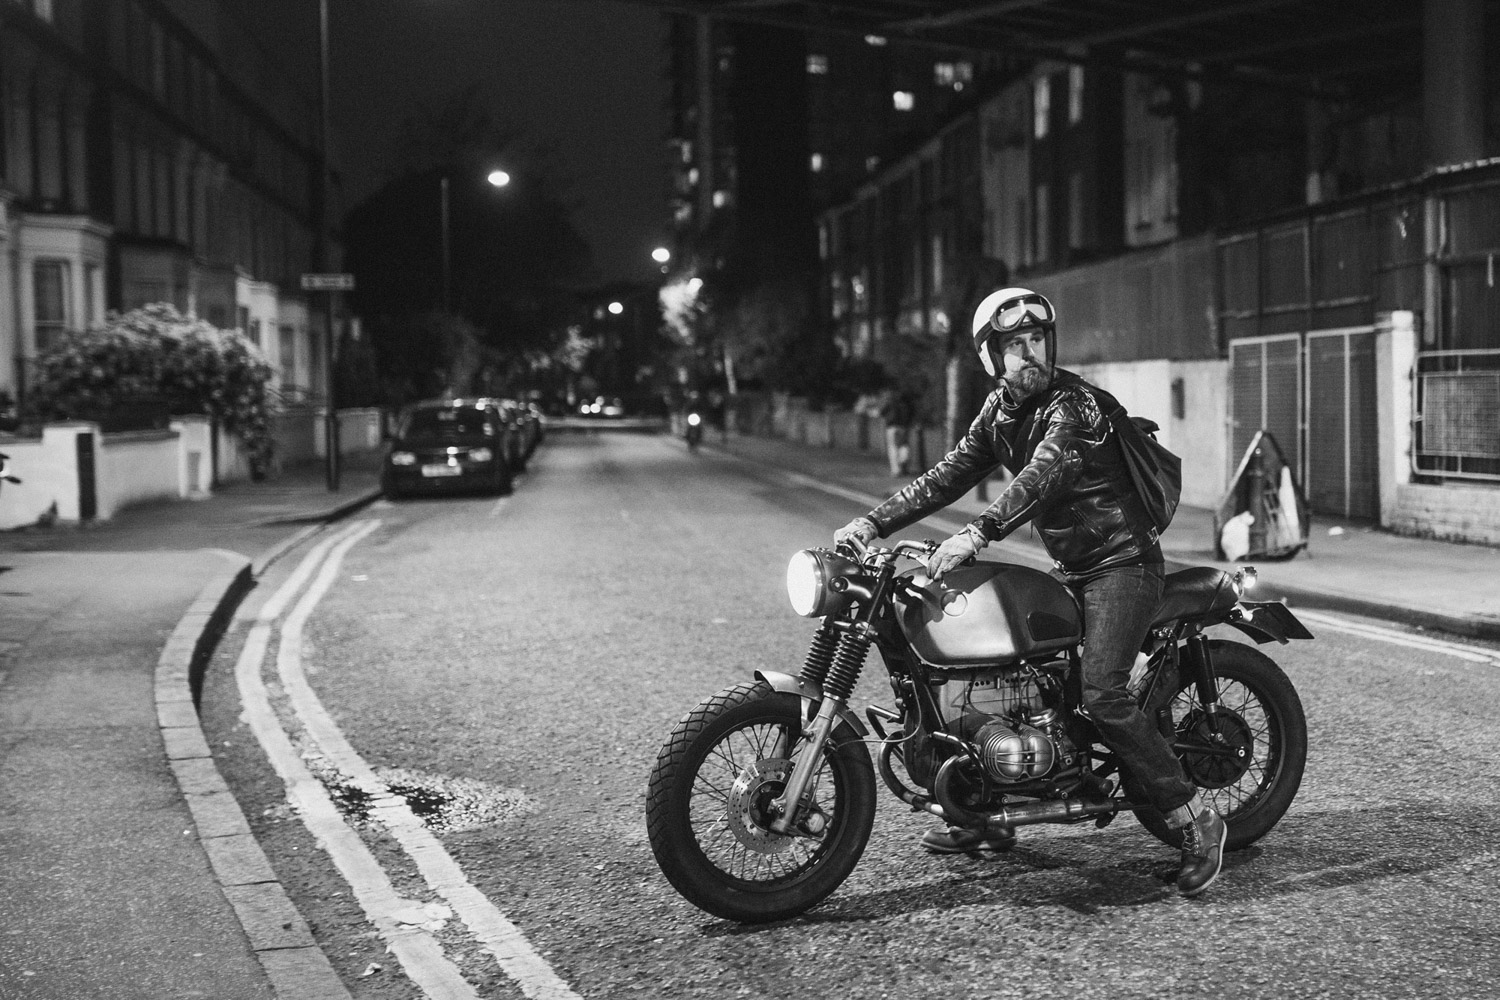 Motorcycle being ridden outside Bolt Motorcycles London.